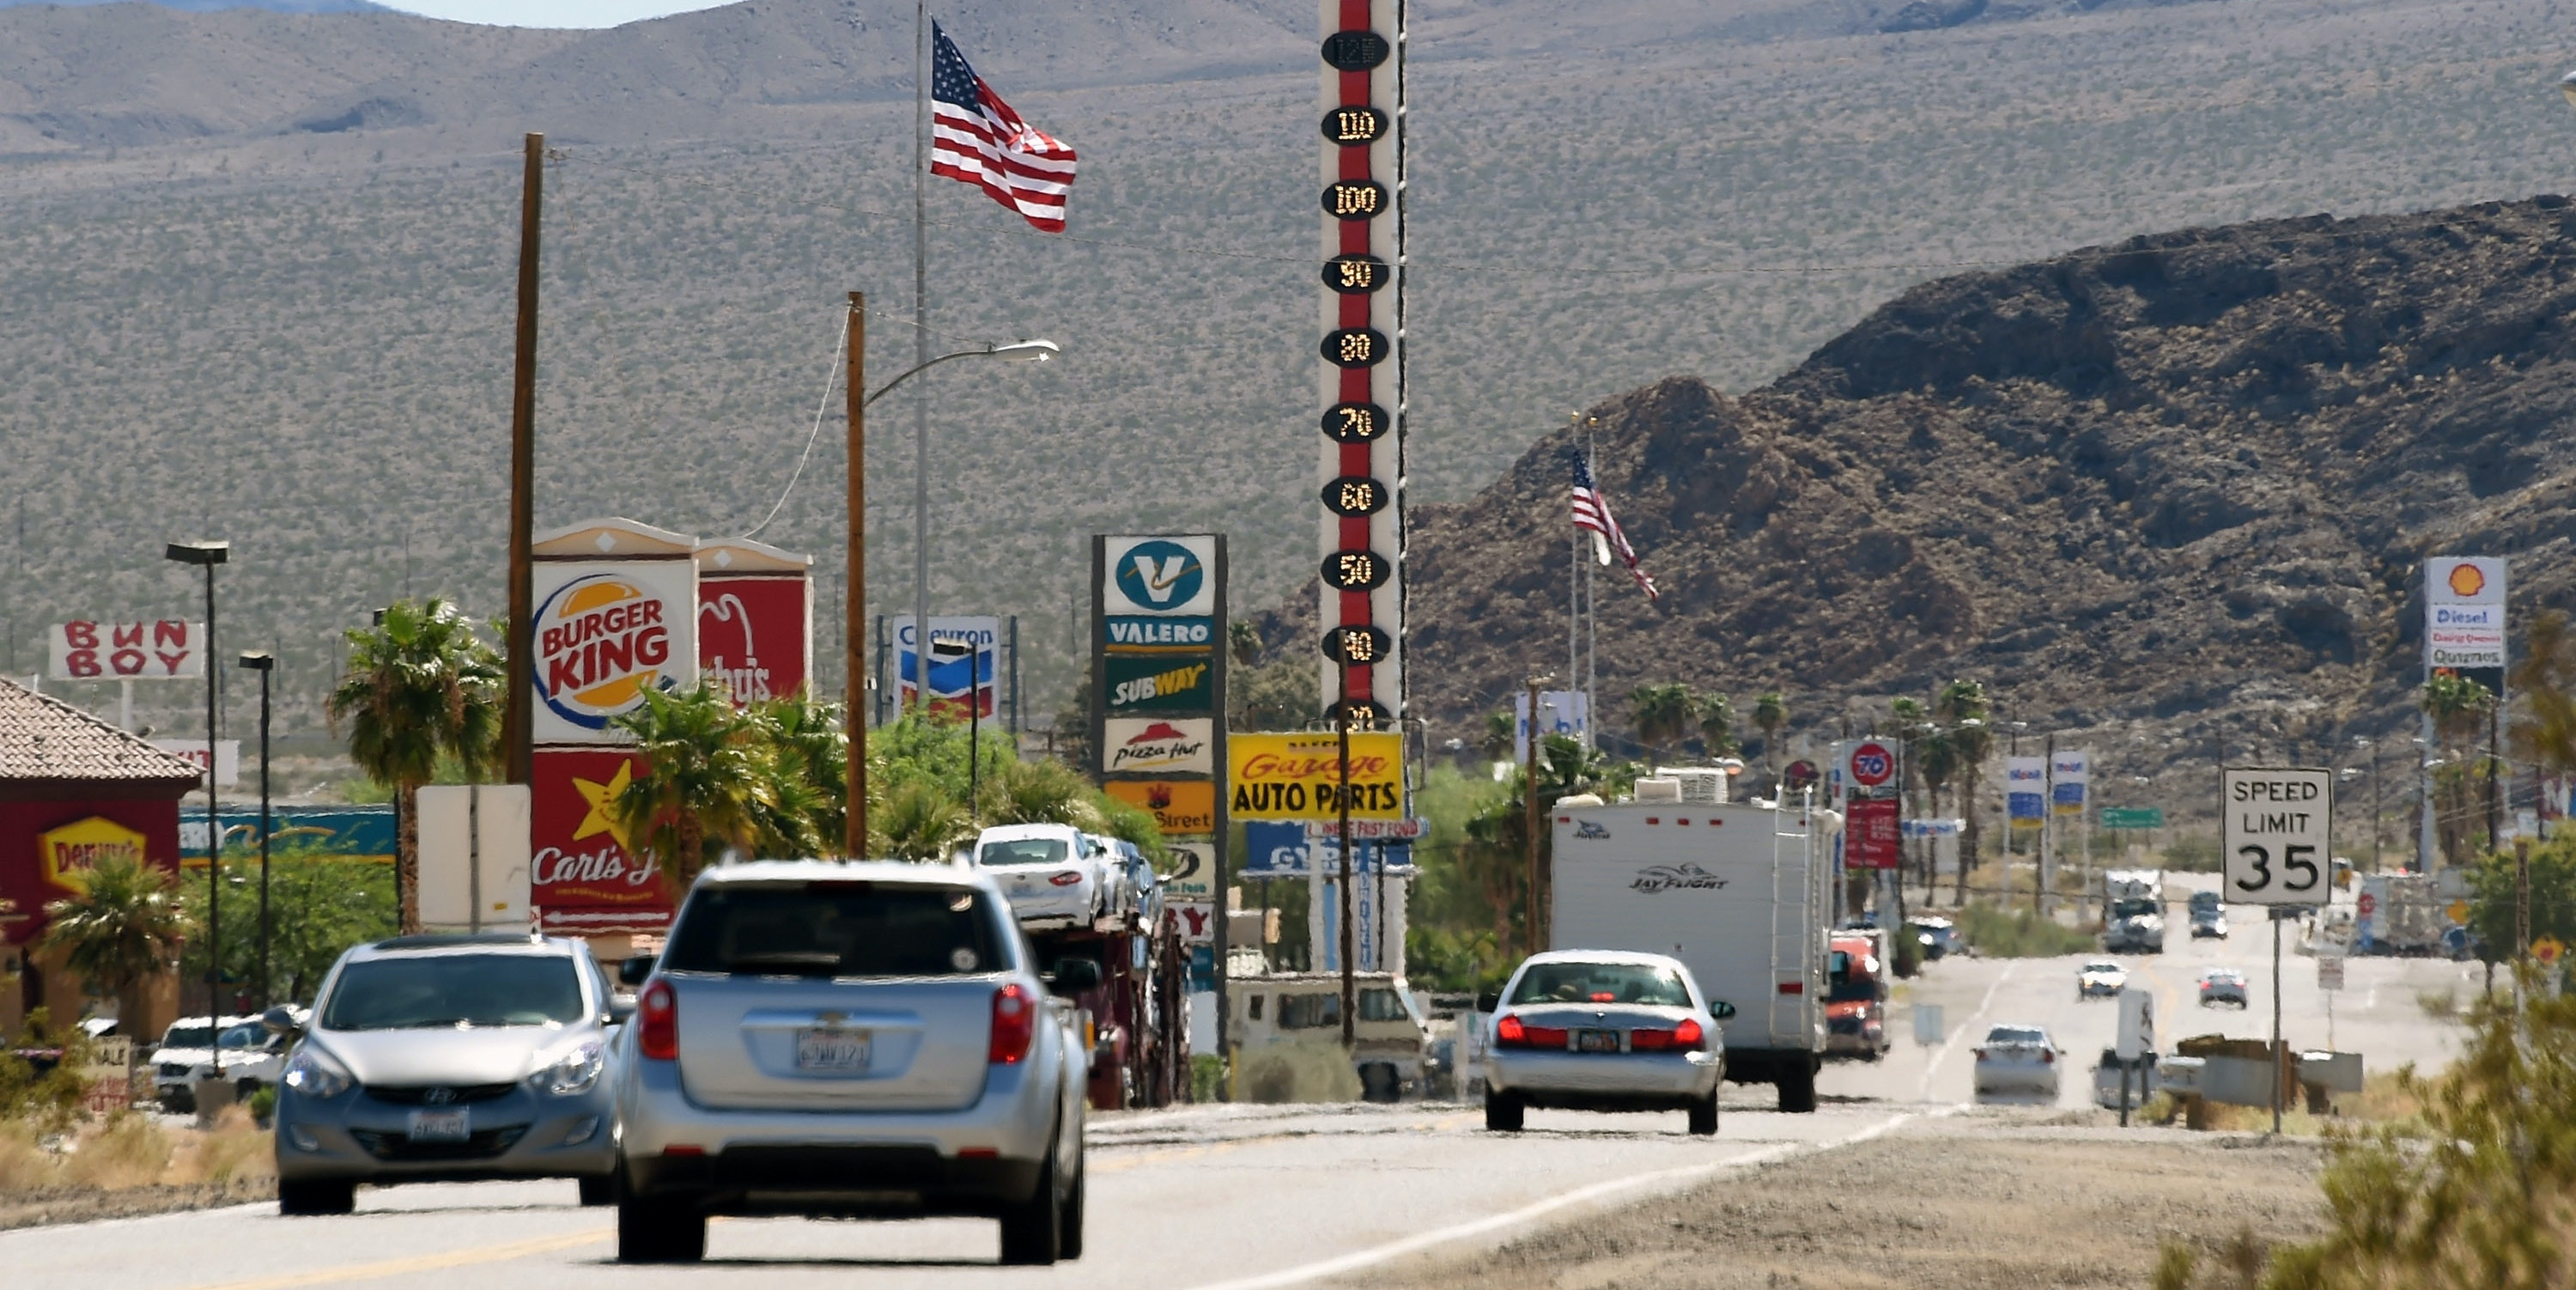 Vehicles drive by a 134-foot-high electronic sign displaying a temperature of 110 degrees Fahrenheit on July 23, 2014 in Baker, California.